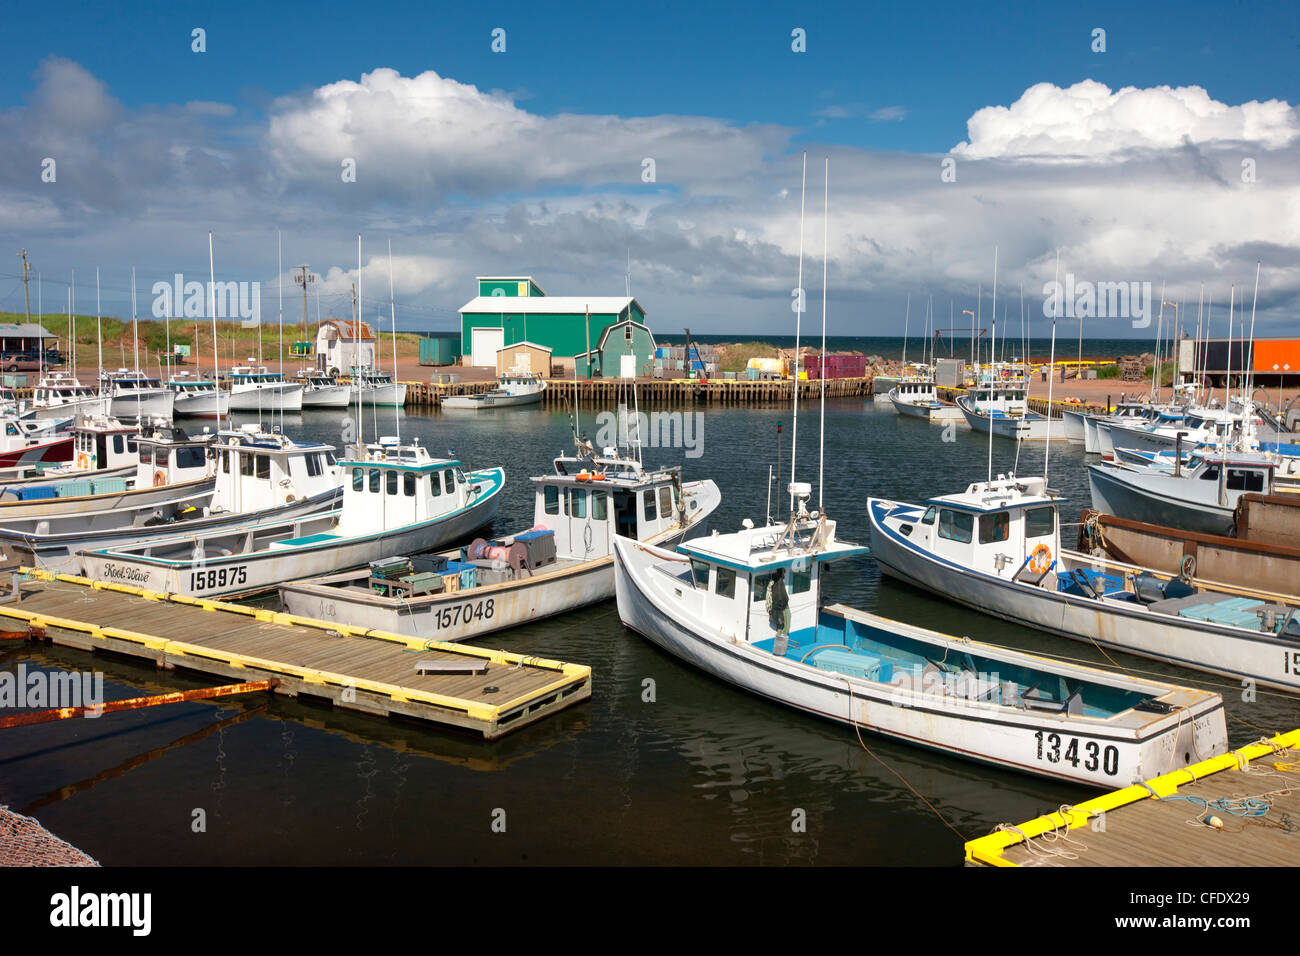 Fishing boats tied up at Seacow Pond, Prince Edward Island, Canada - Stock Image